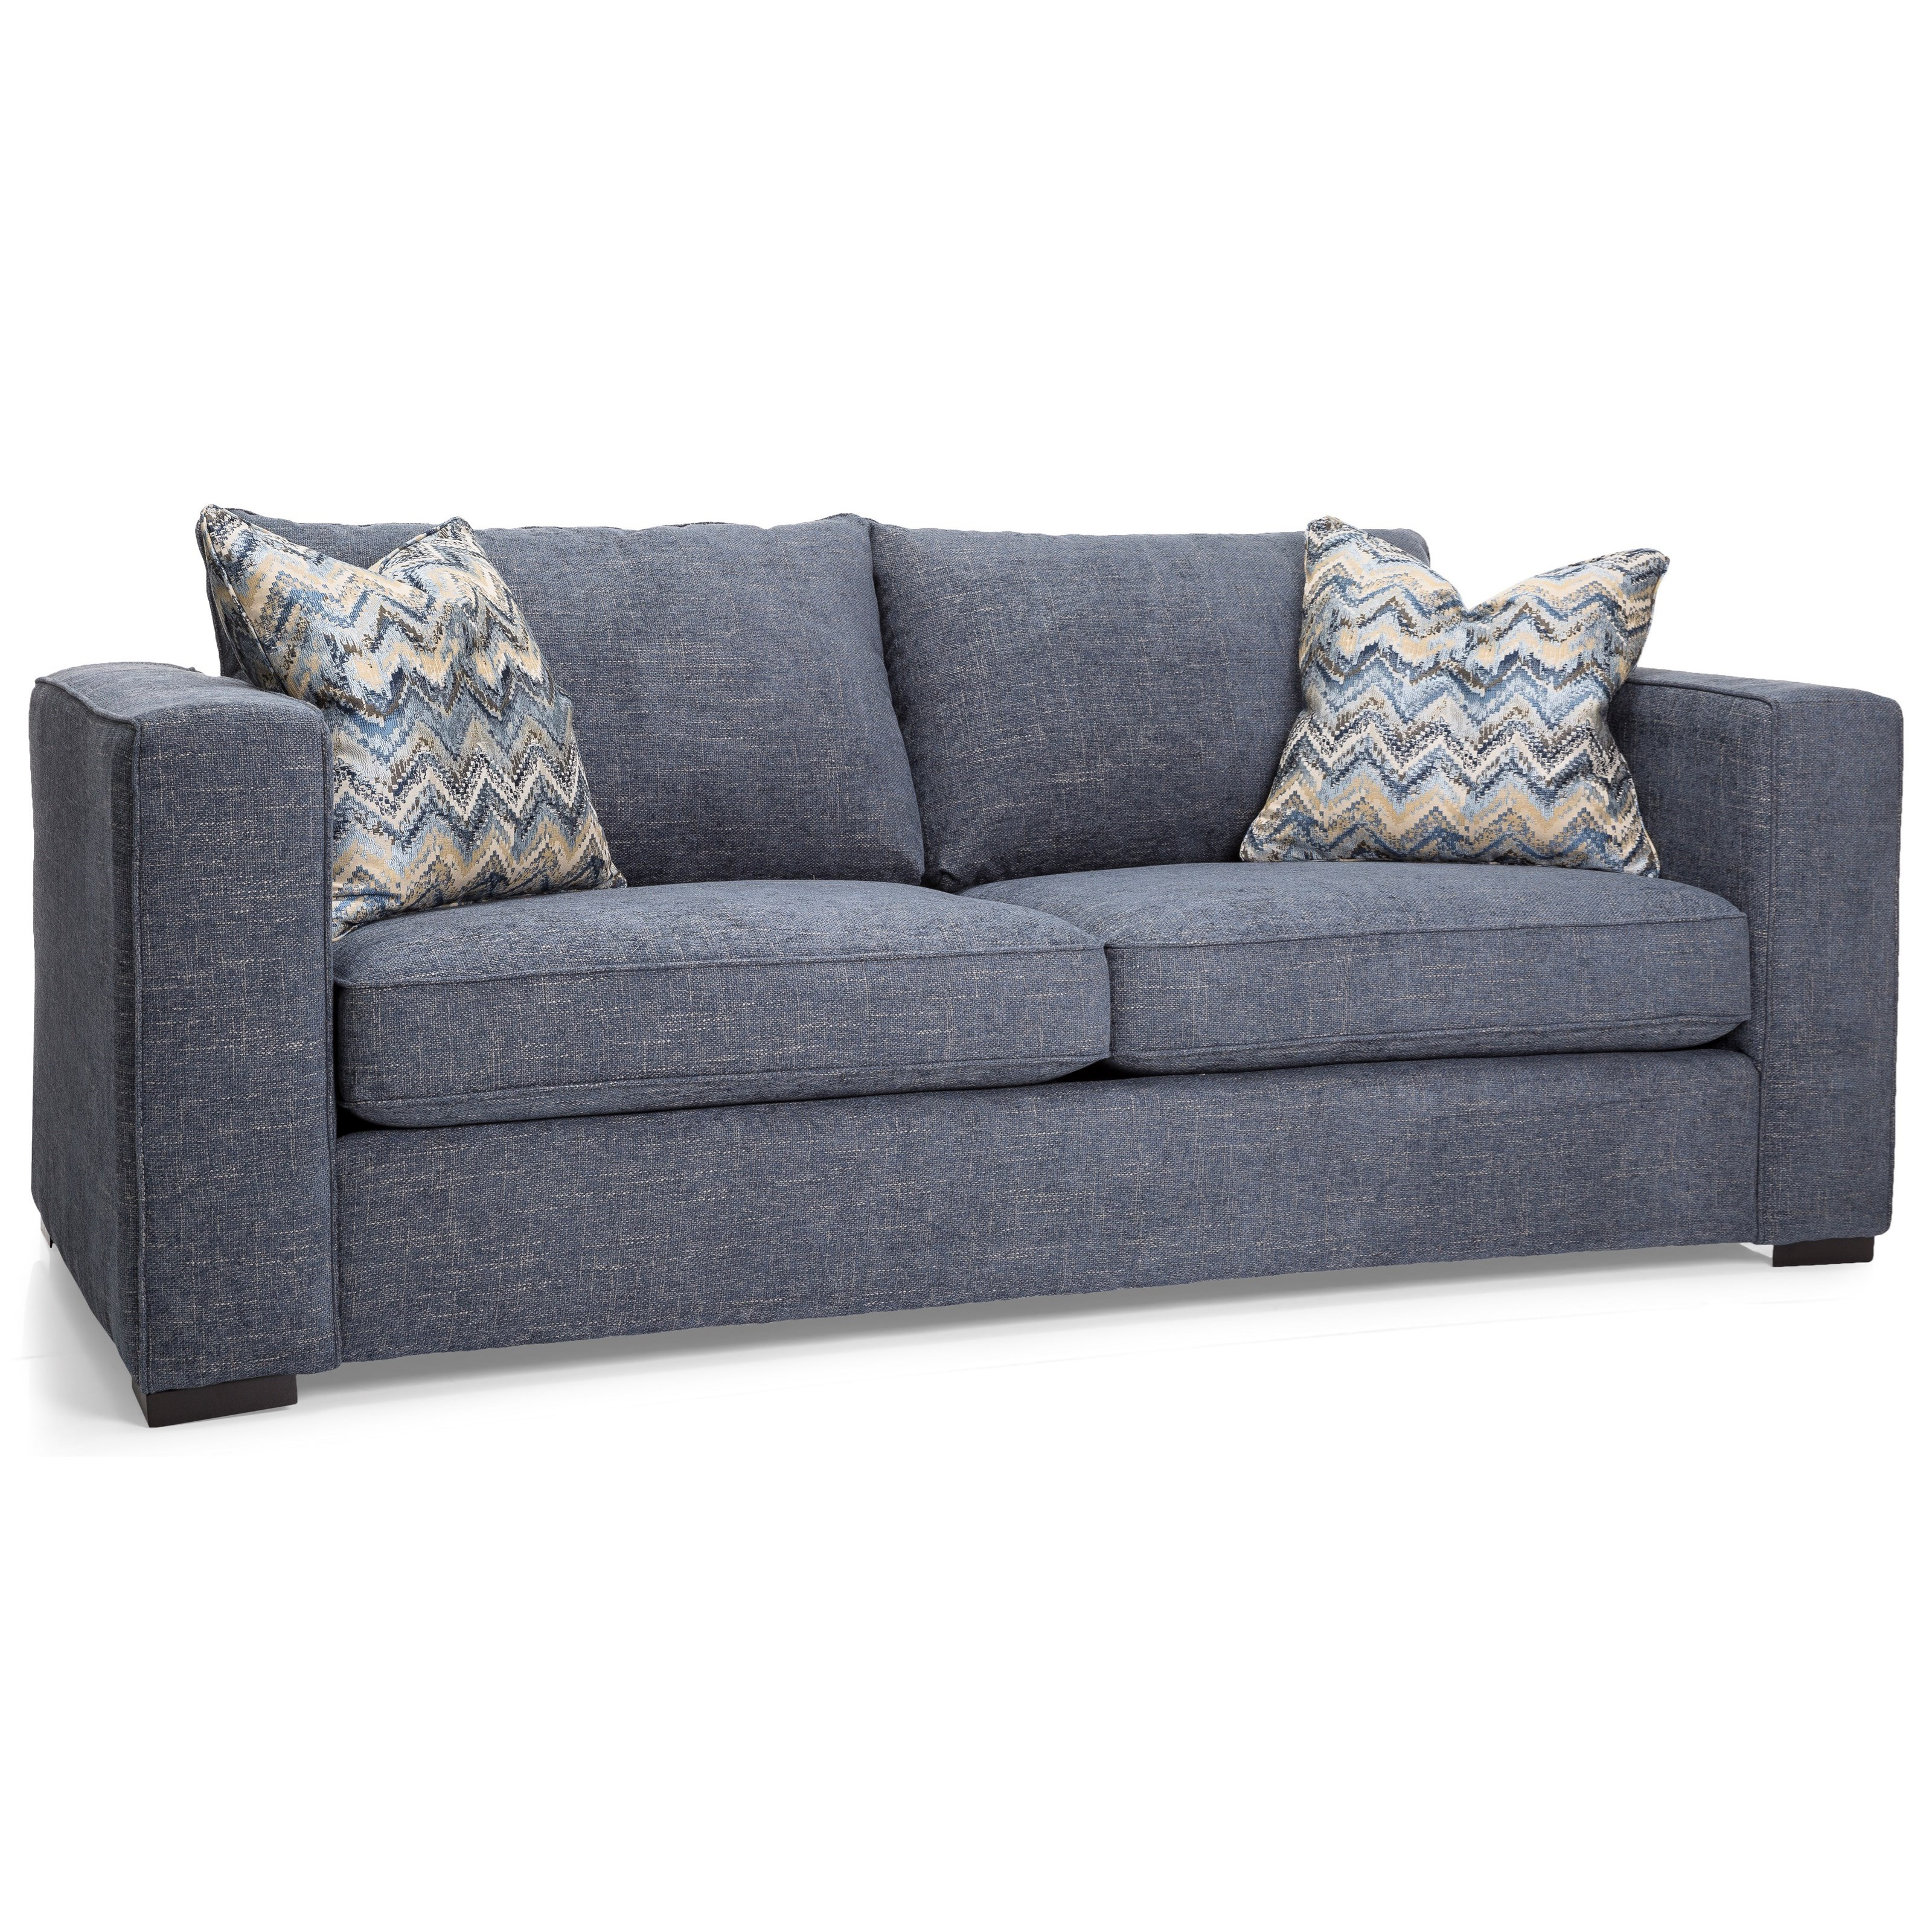 2900 Sofa by Decor-Rest at Fine Home Furnishings